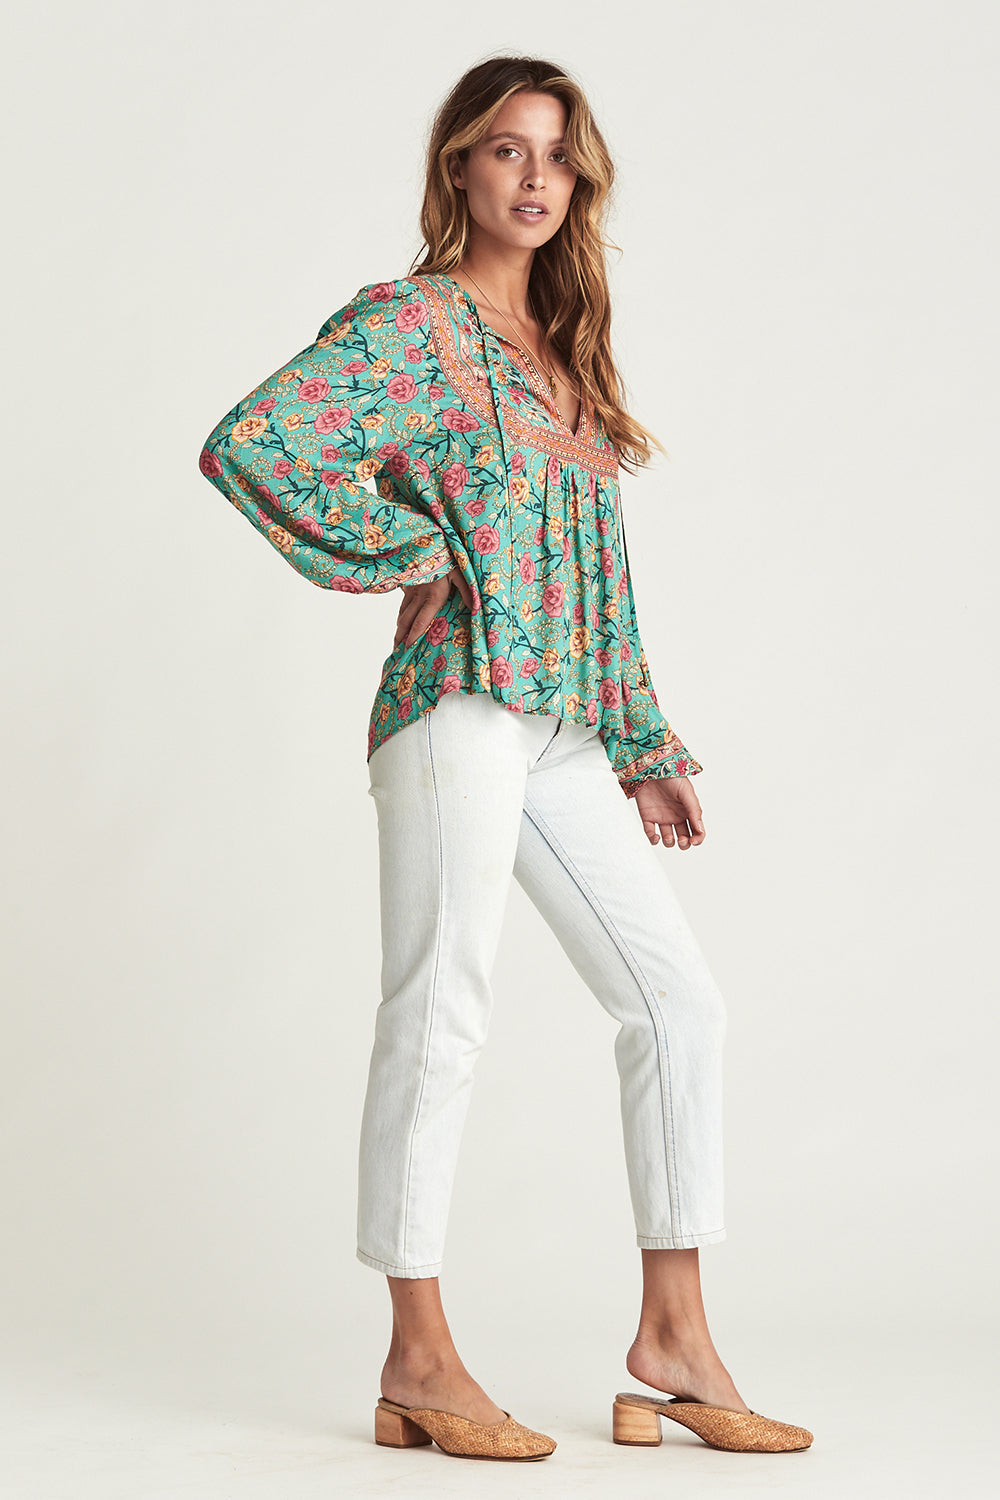 Muse Blouse in Verde